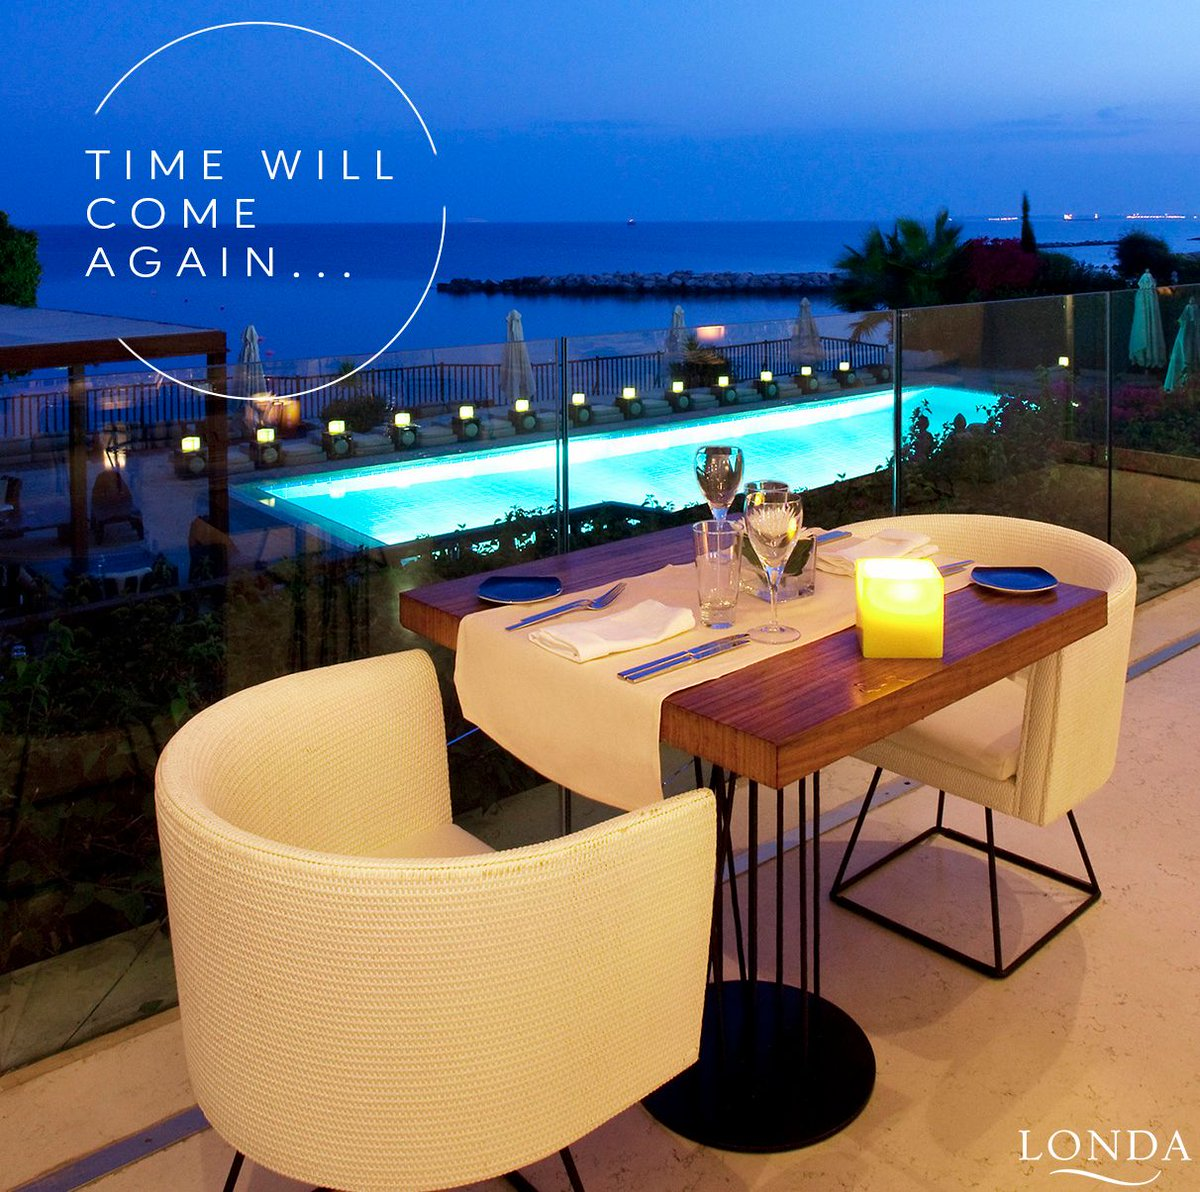 Stay alert and be ready because time will come again, when we will all be able to sit around the dinner table at Caprice @ Londa Hotel! #londahotel #londabeachhotel #limassol #cyprus #hotelsinlimassol #dinnertable #timewillcome #stayhealthy #besafe #weareready #capricerestaurant https://t.co/3BuzwcEhIS